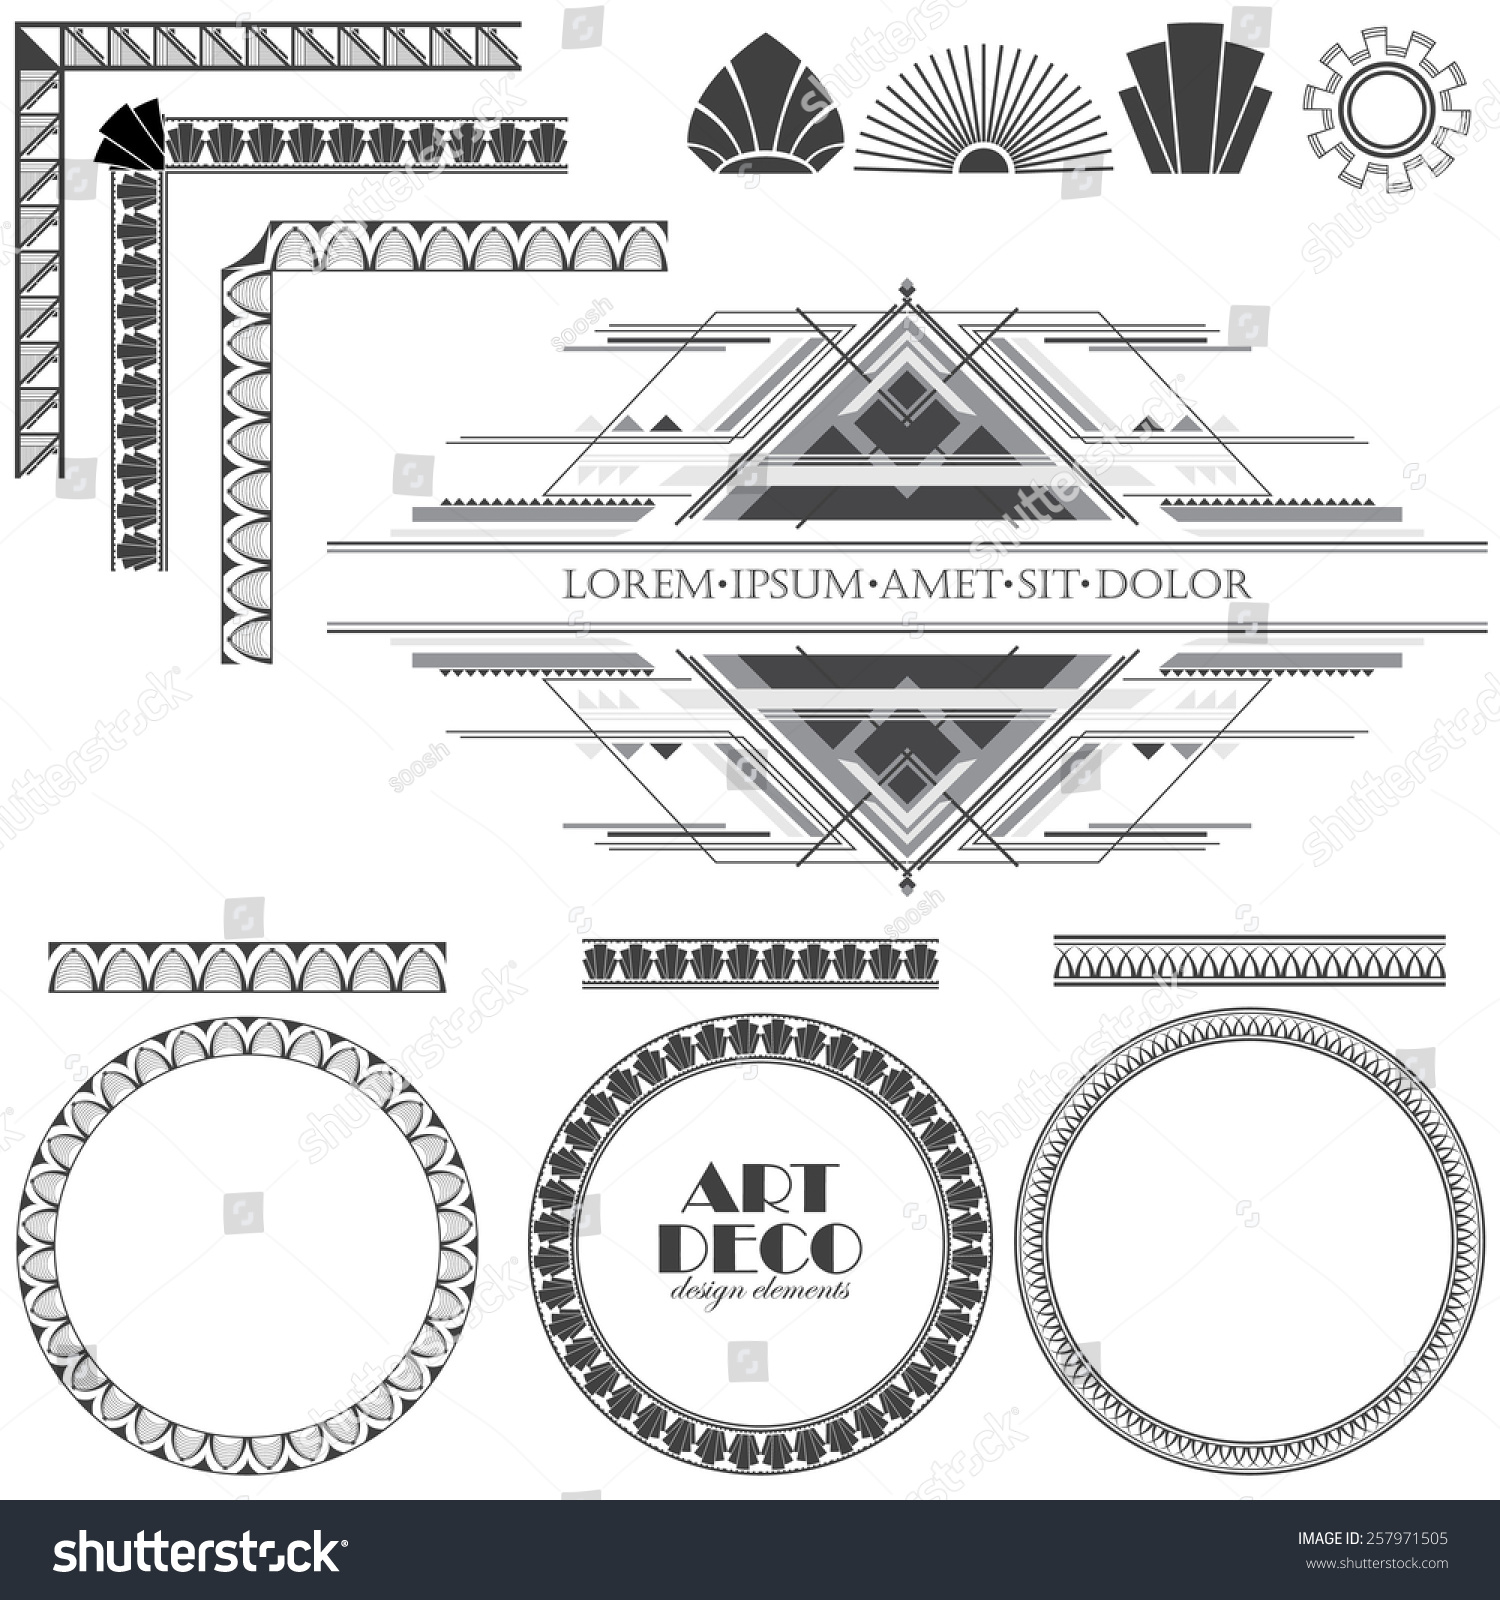 Art deco ornaments - Vector Illustration Of An Art Deco Ornaments And Frame Templates For Invitation Wedding And Other